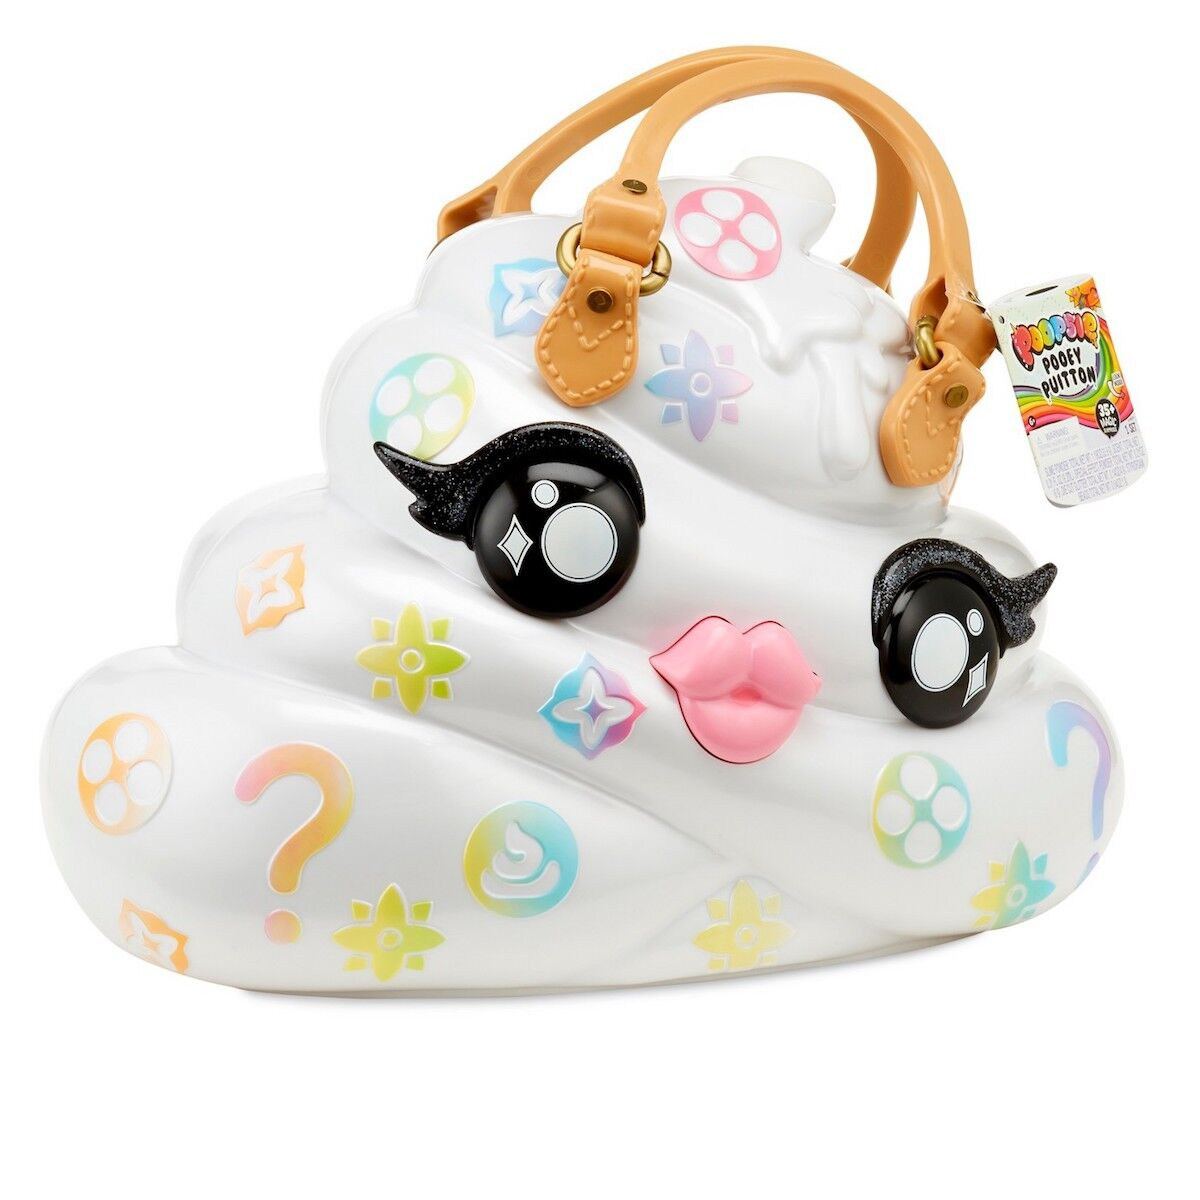 The Poopsie Pooey Puitton Slime Surprise Slime Kit & Carrying Case. Image via Target.